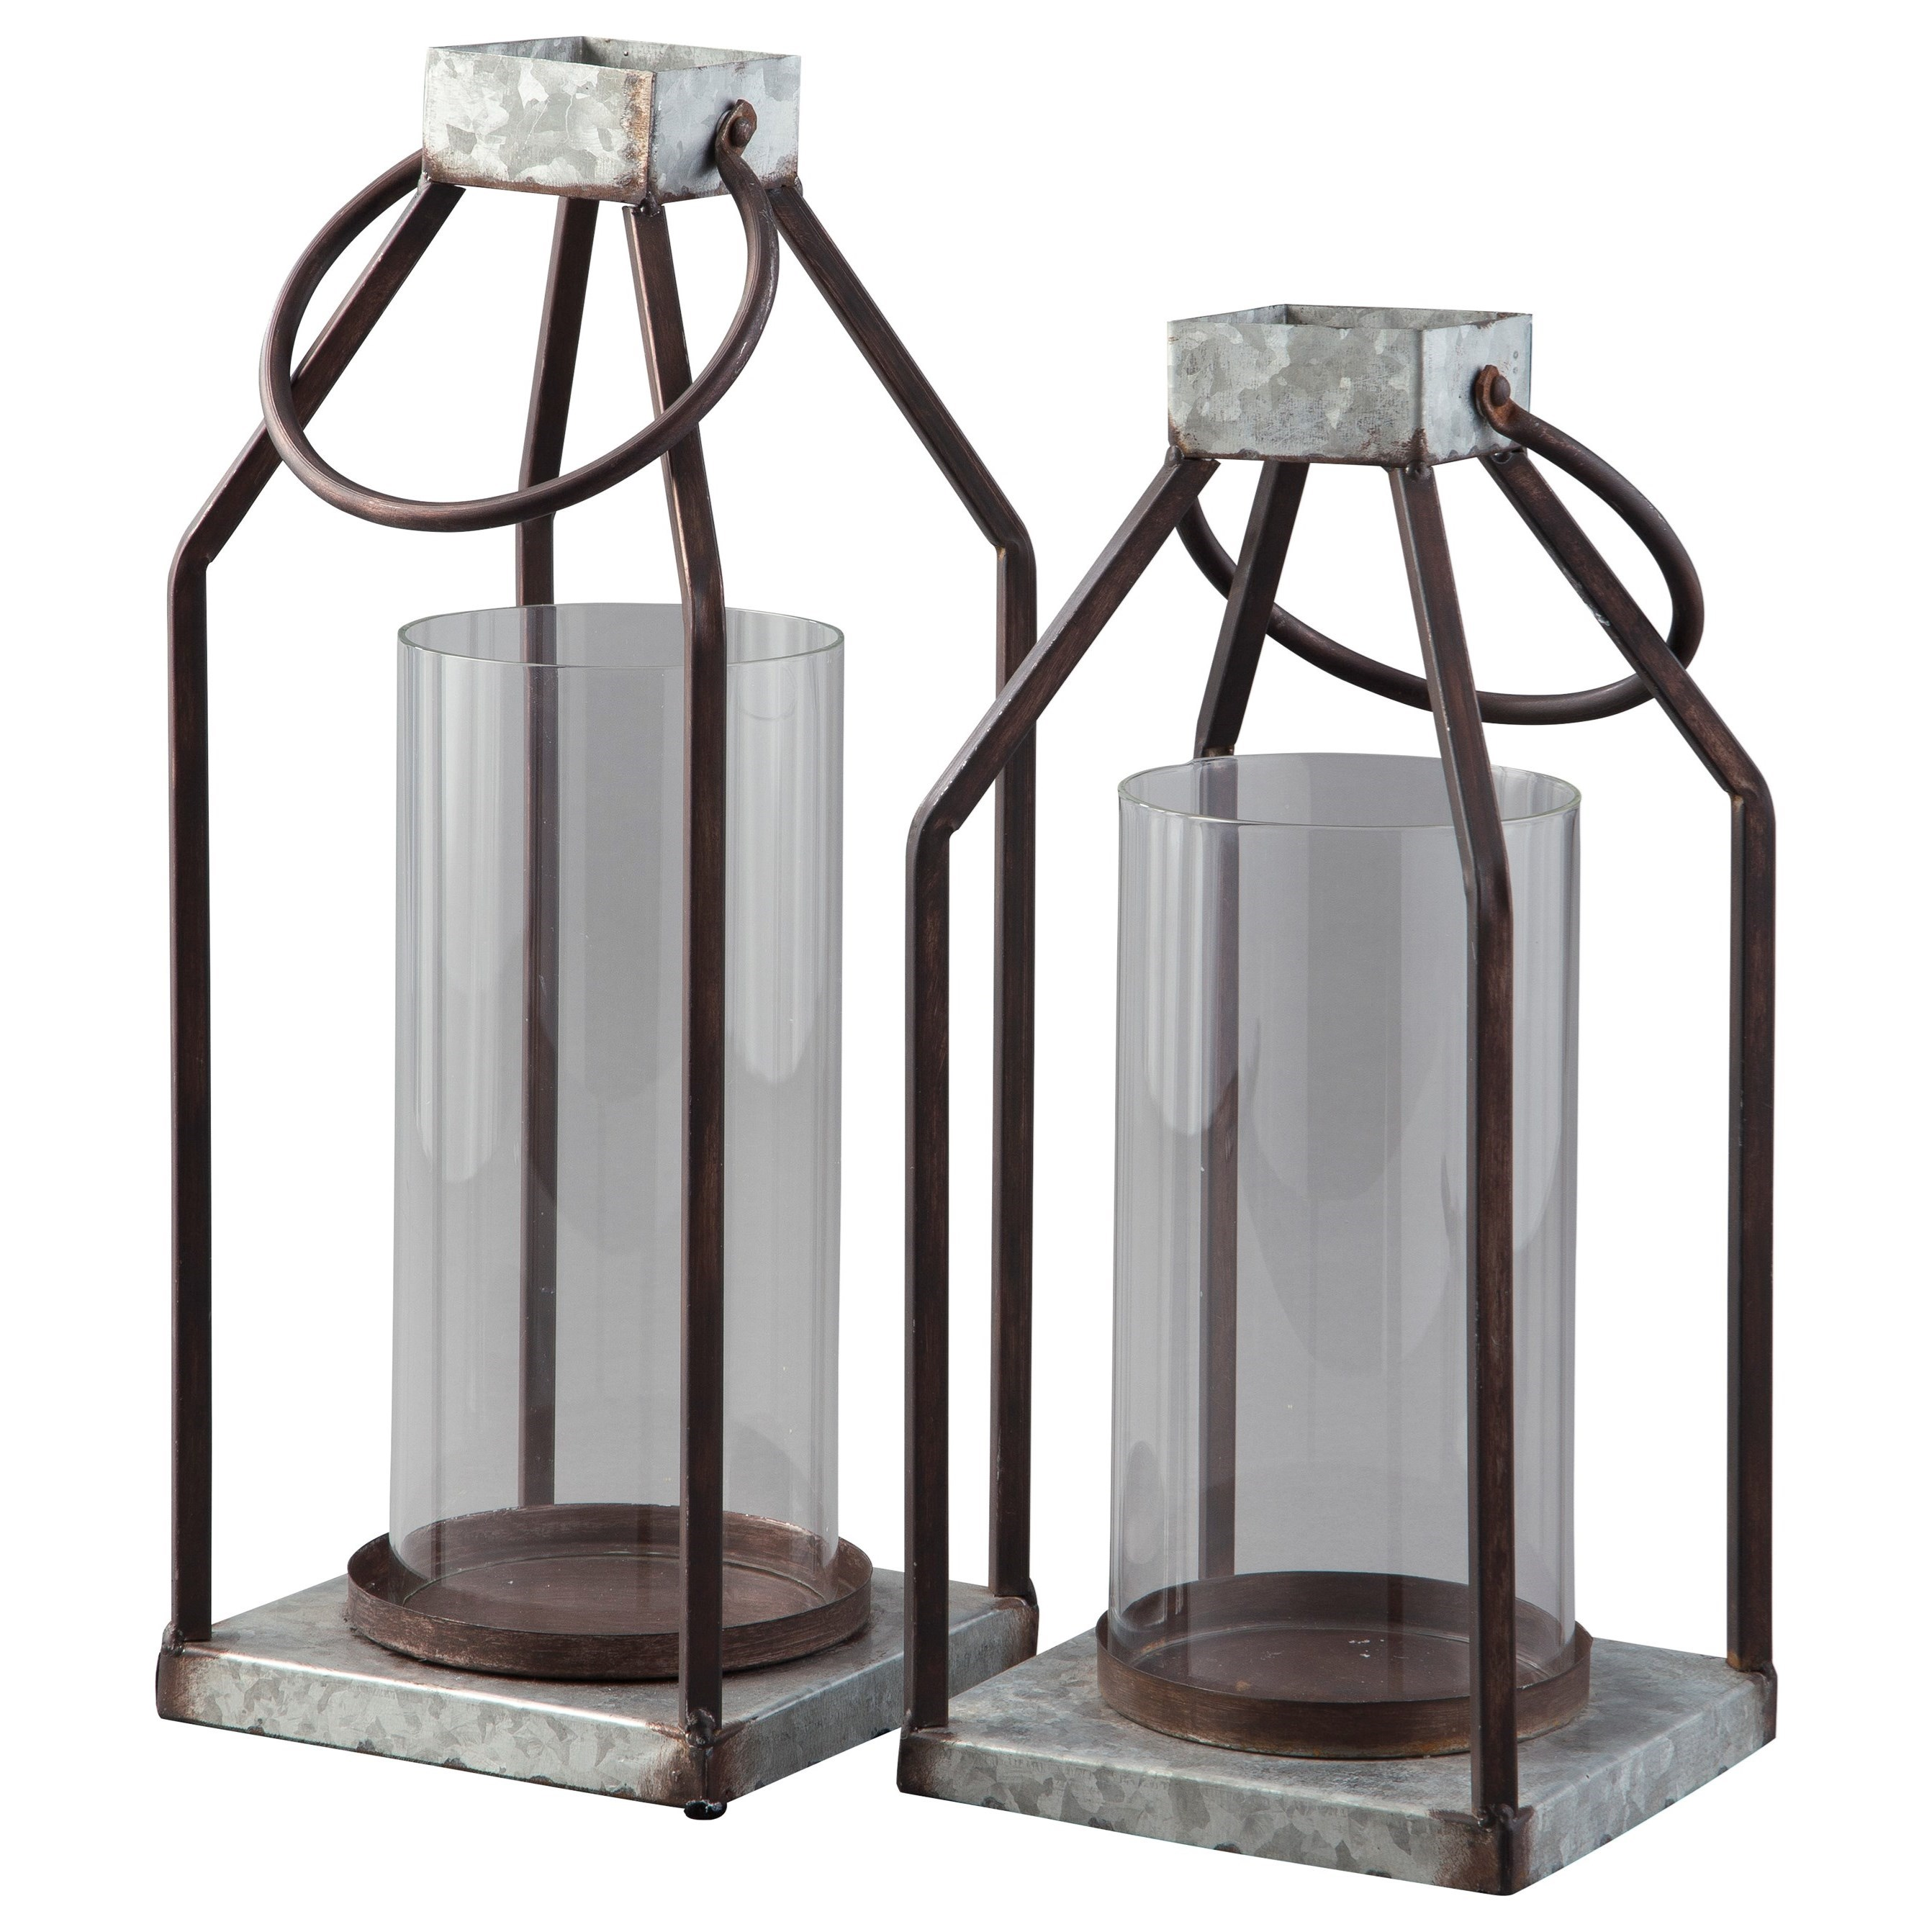 Accents Diedrick Gray/Black Lantern Set by Signature Design by Ashley at Zak's Warehouse Clearance Center